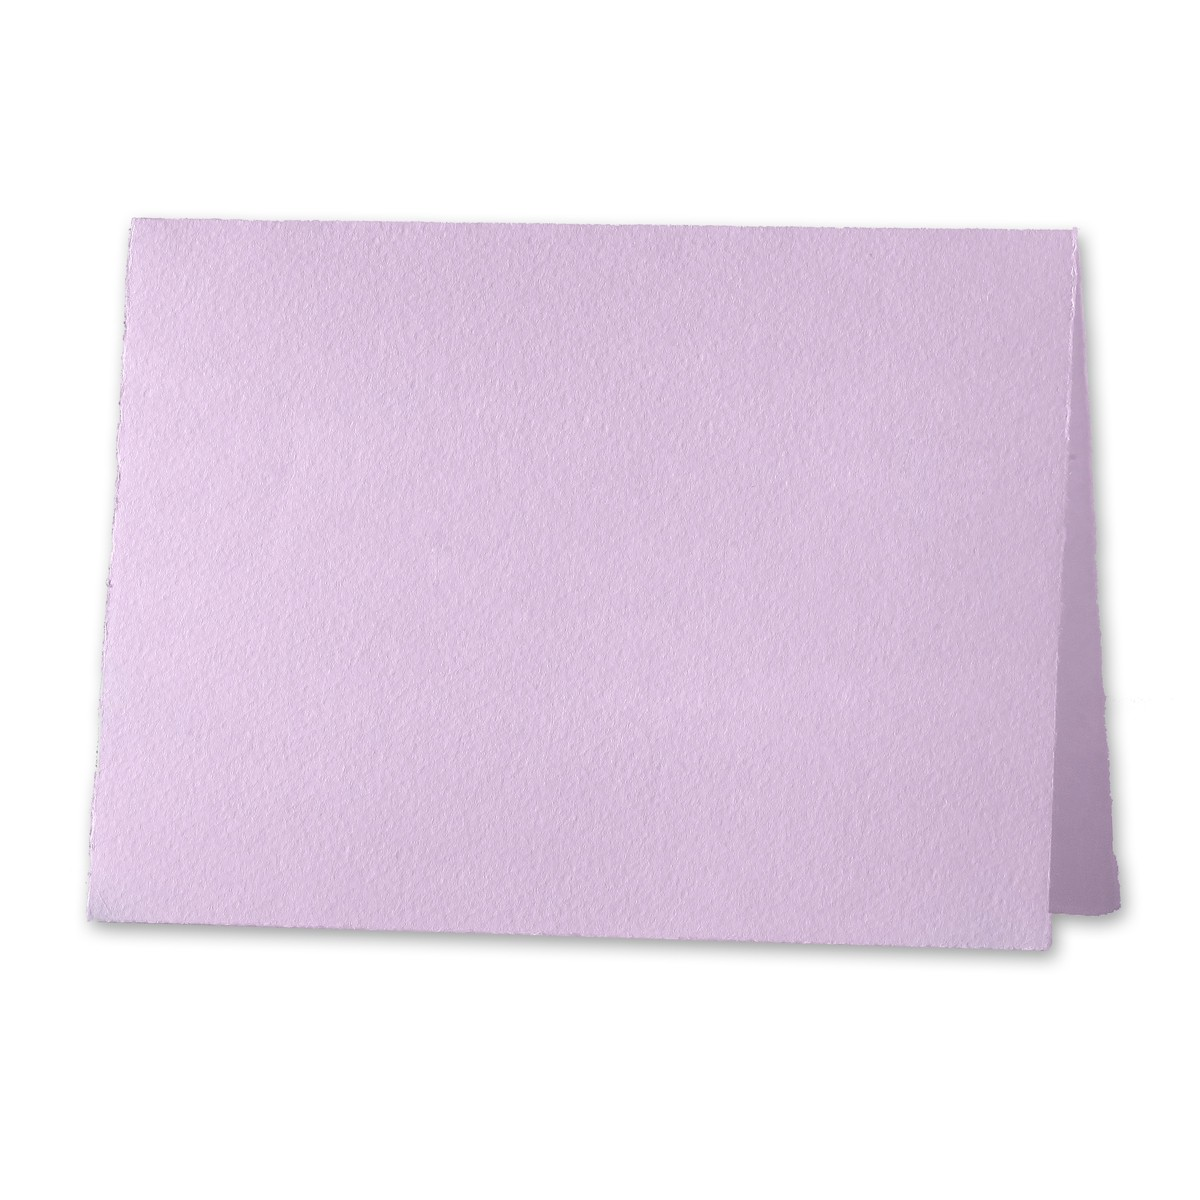 "Arturo Lavender Grande Invitation Foldovers (700LC) 97# Cover (7.88"" x 11.75"" open size) Bulk Pack of 100"